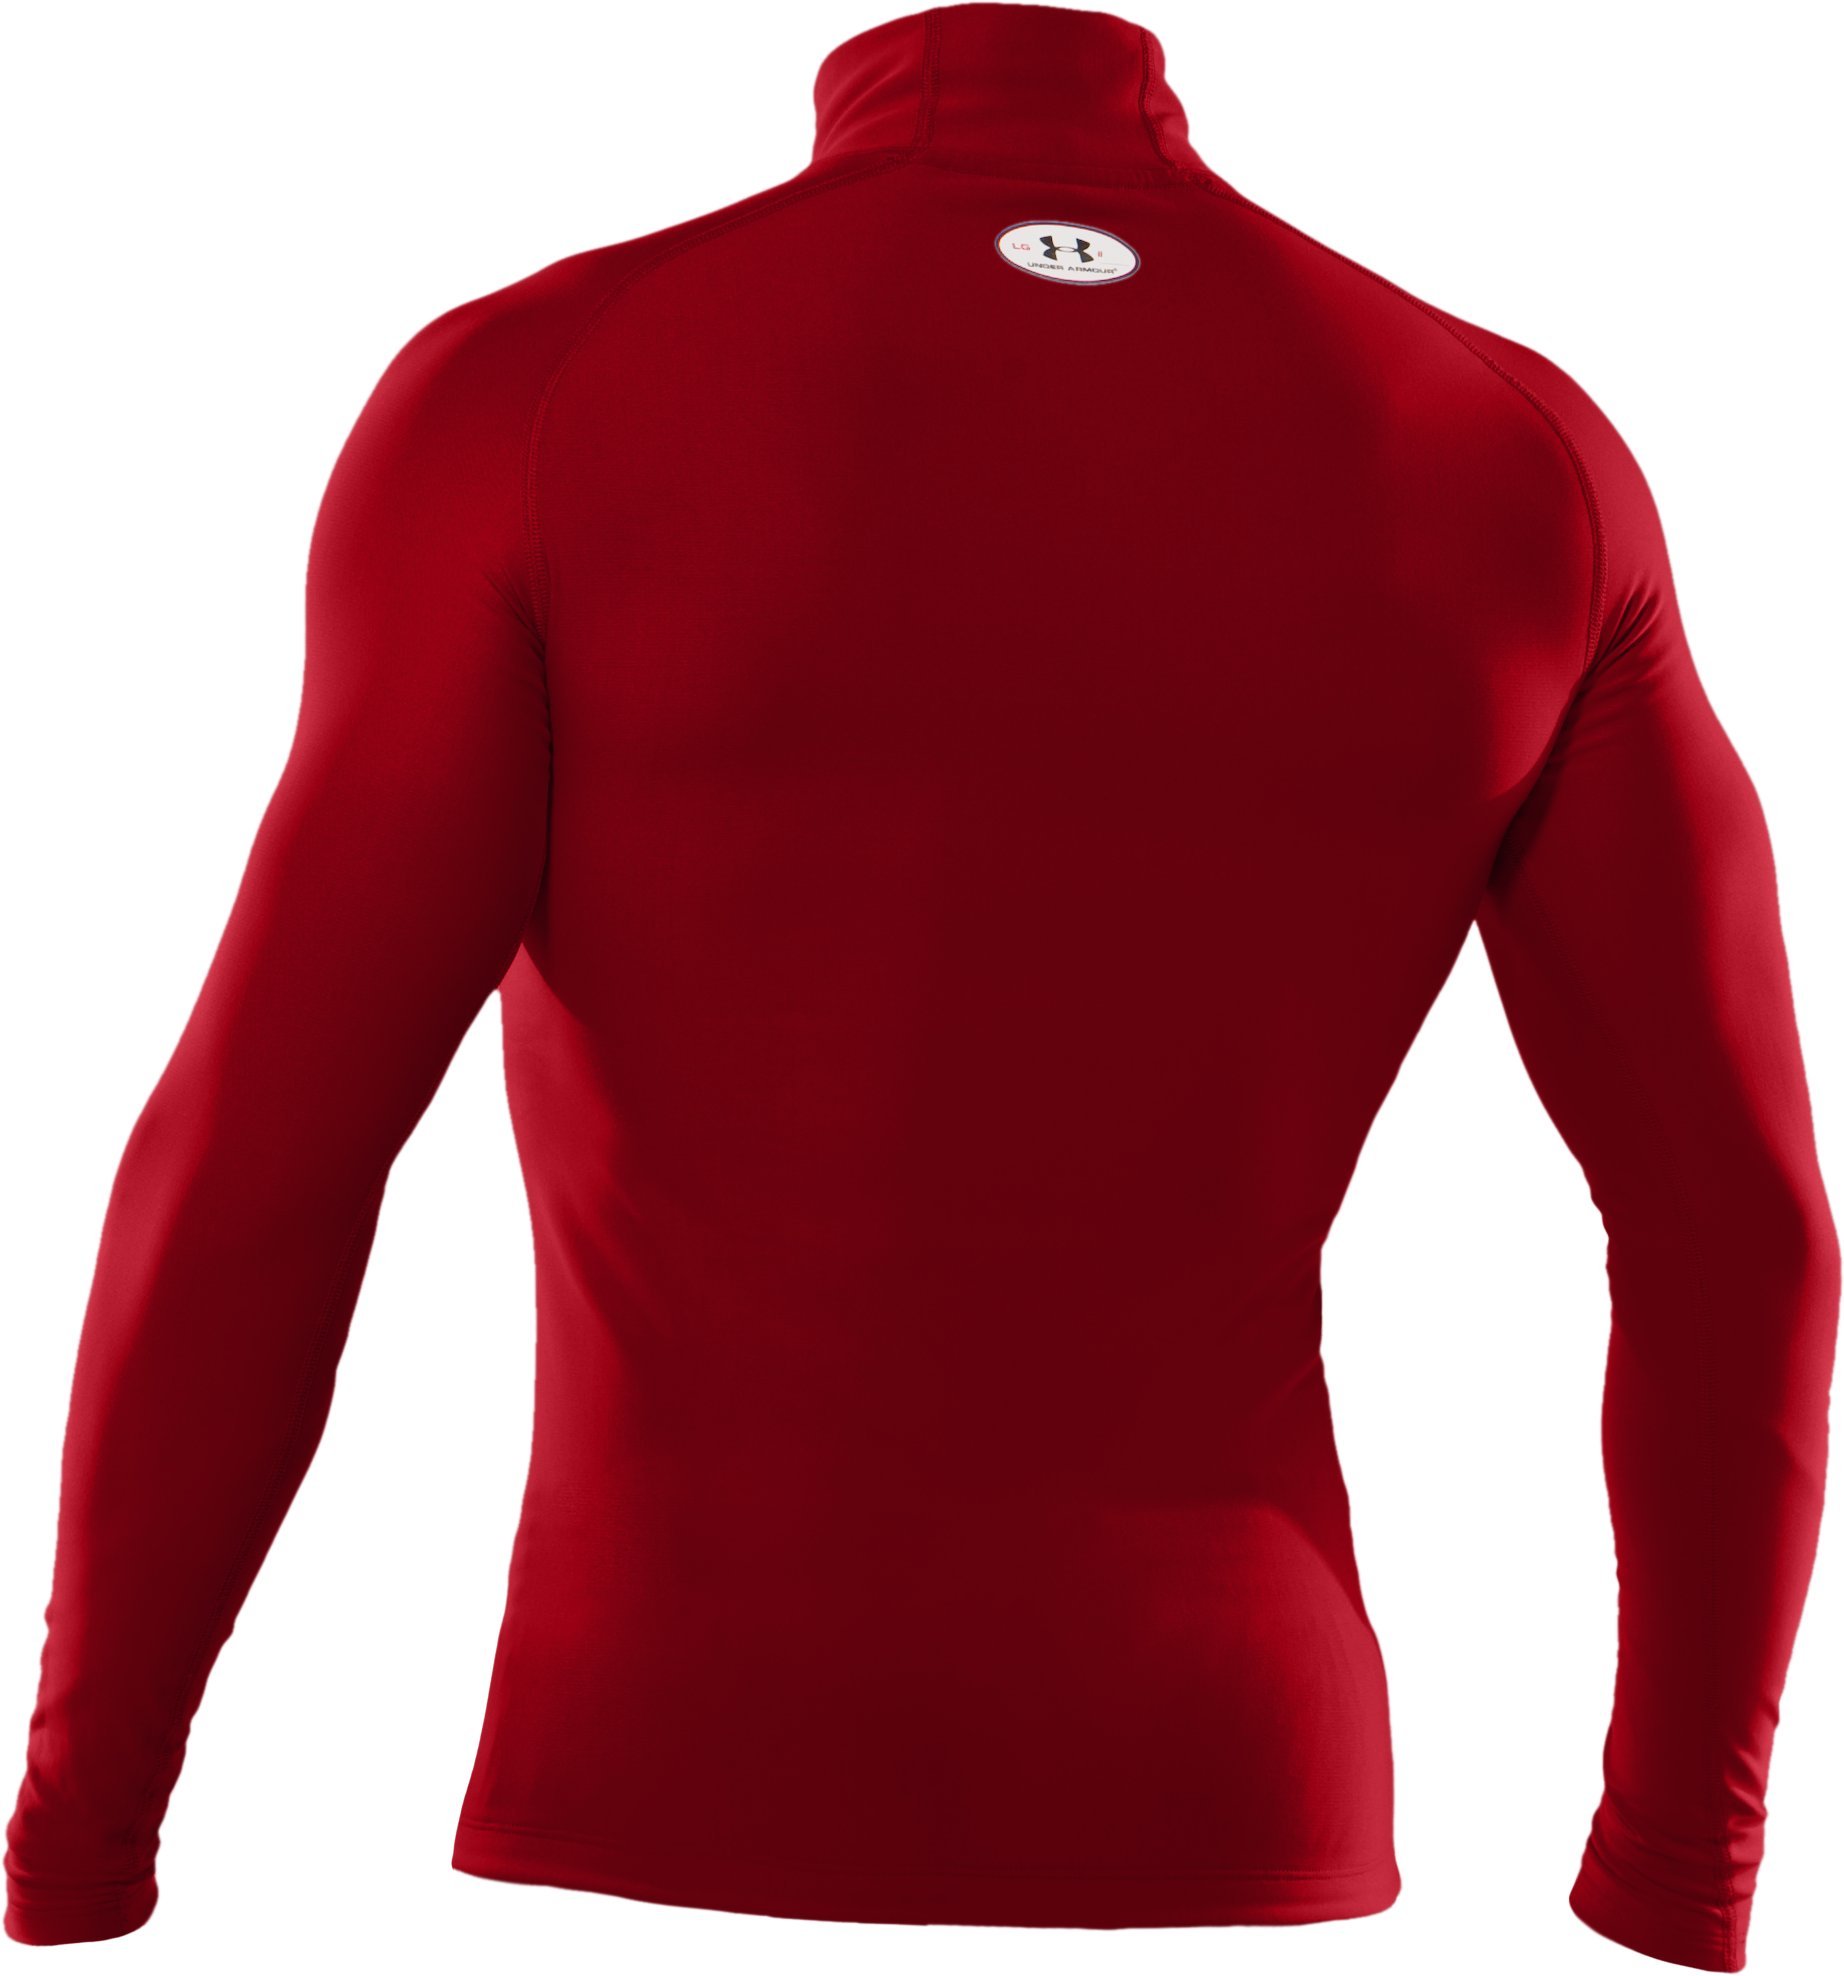 Men's ColdGear® Evo Long Sleeve Compression Mock, Red